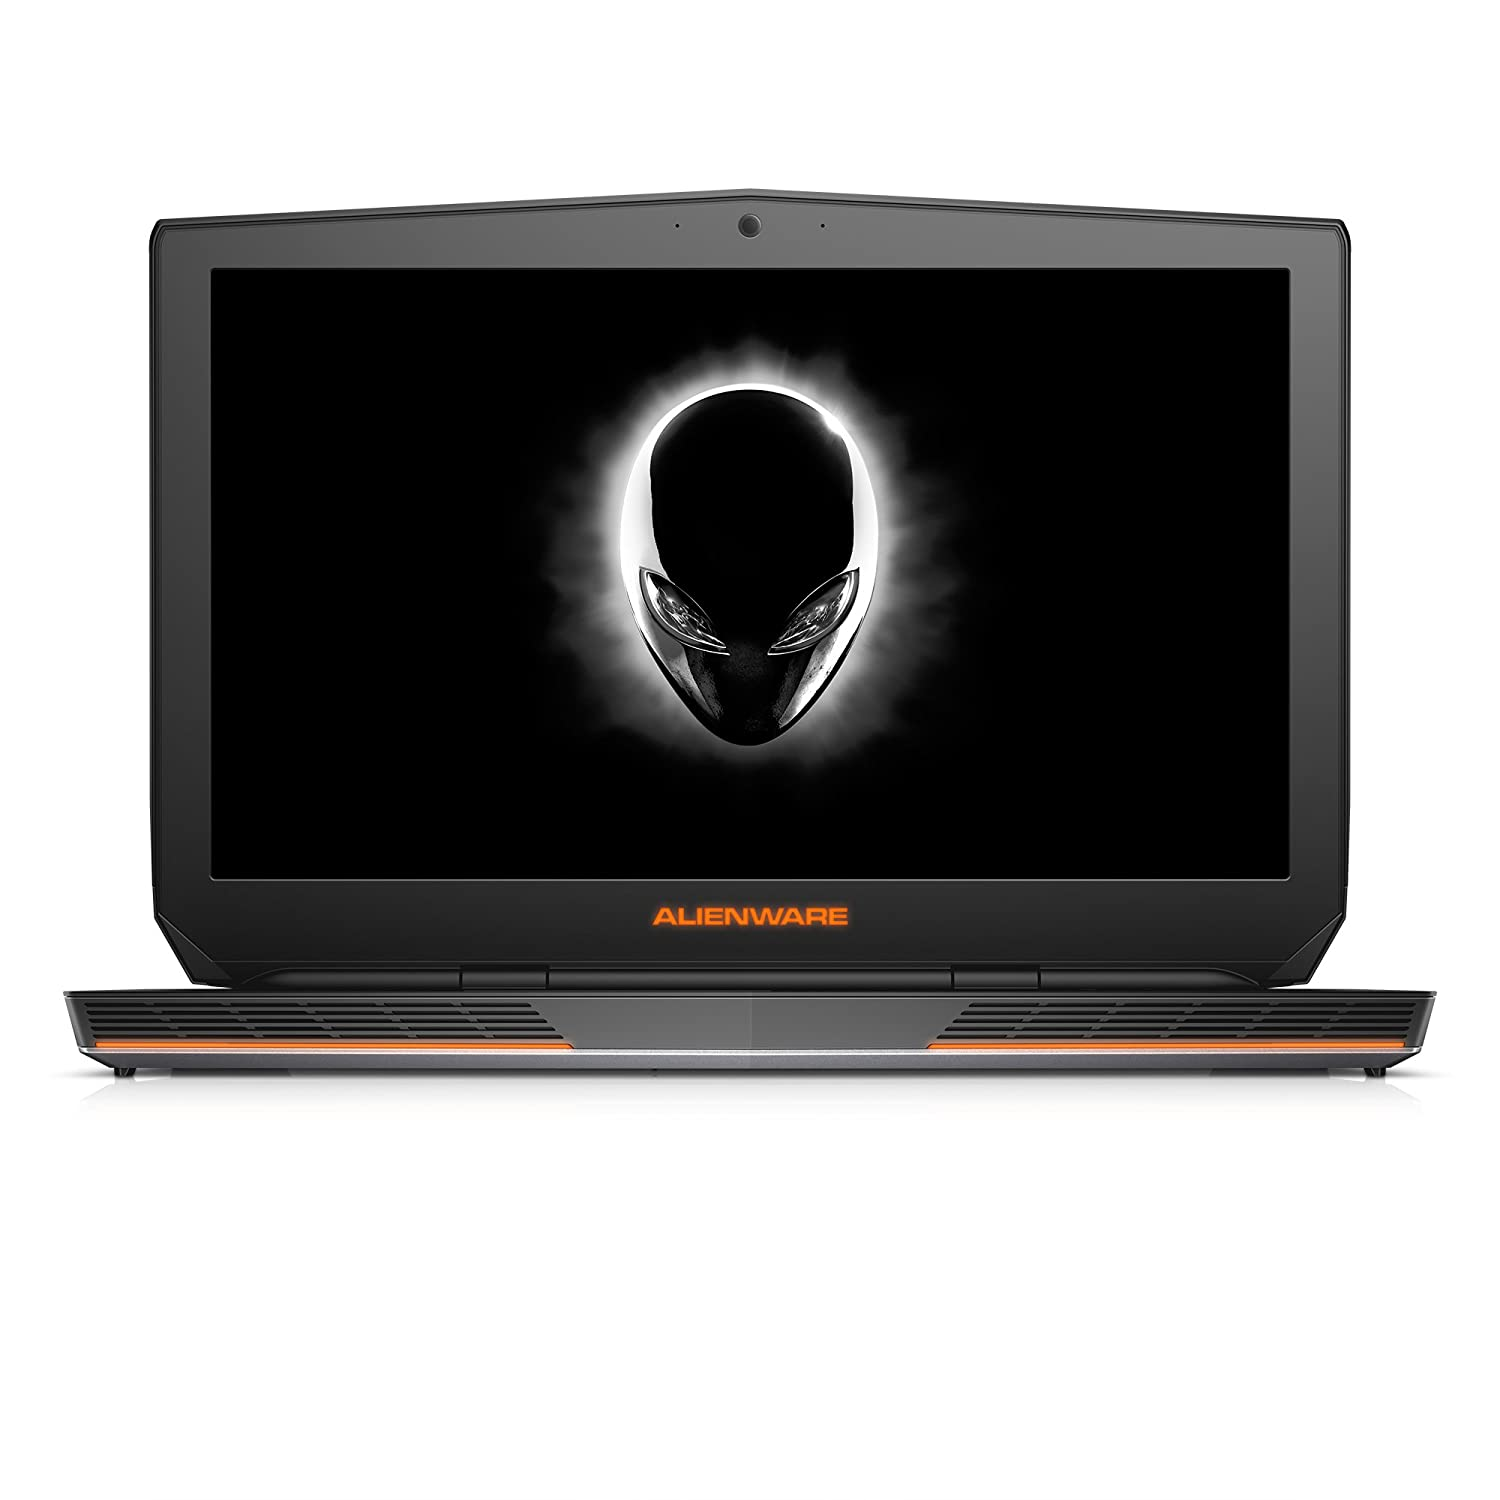 Alienware AW17R3-4175SLV 17.3-Inch FHD Laptop (6th Generation Intel Core i7, 16 GB RAM, 1 TB HDD + 256 GB SATA SSD,NVIDIA GeForce GTX 970M, Windows 10 Home), Silver)